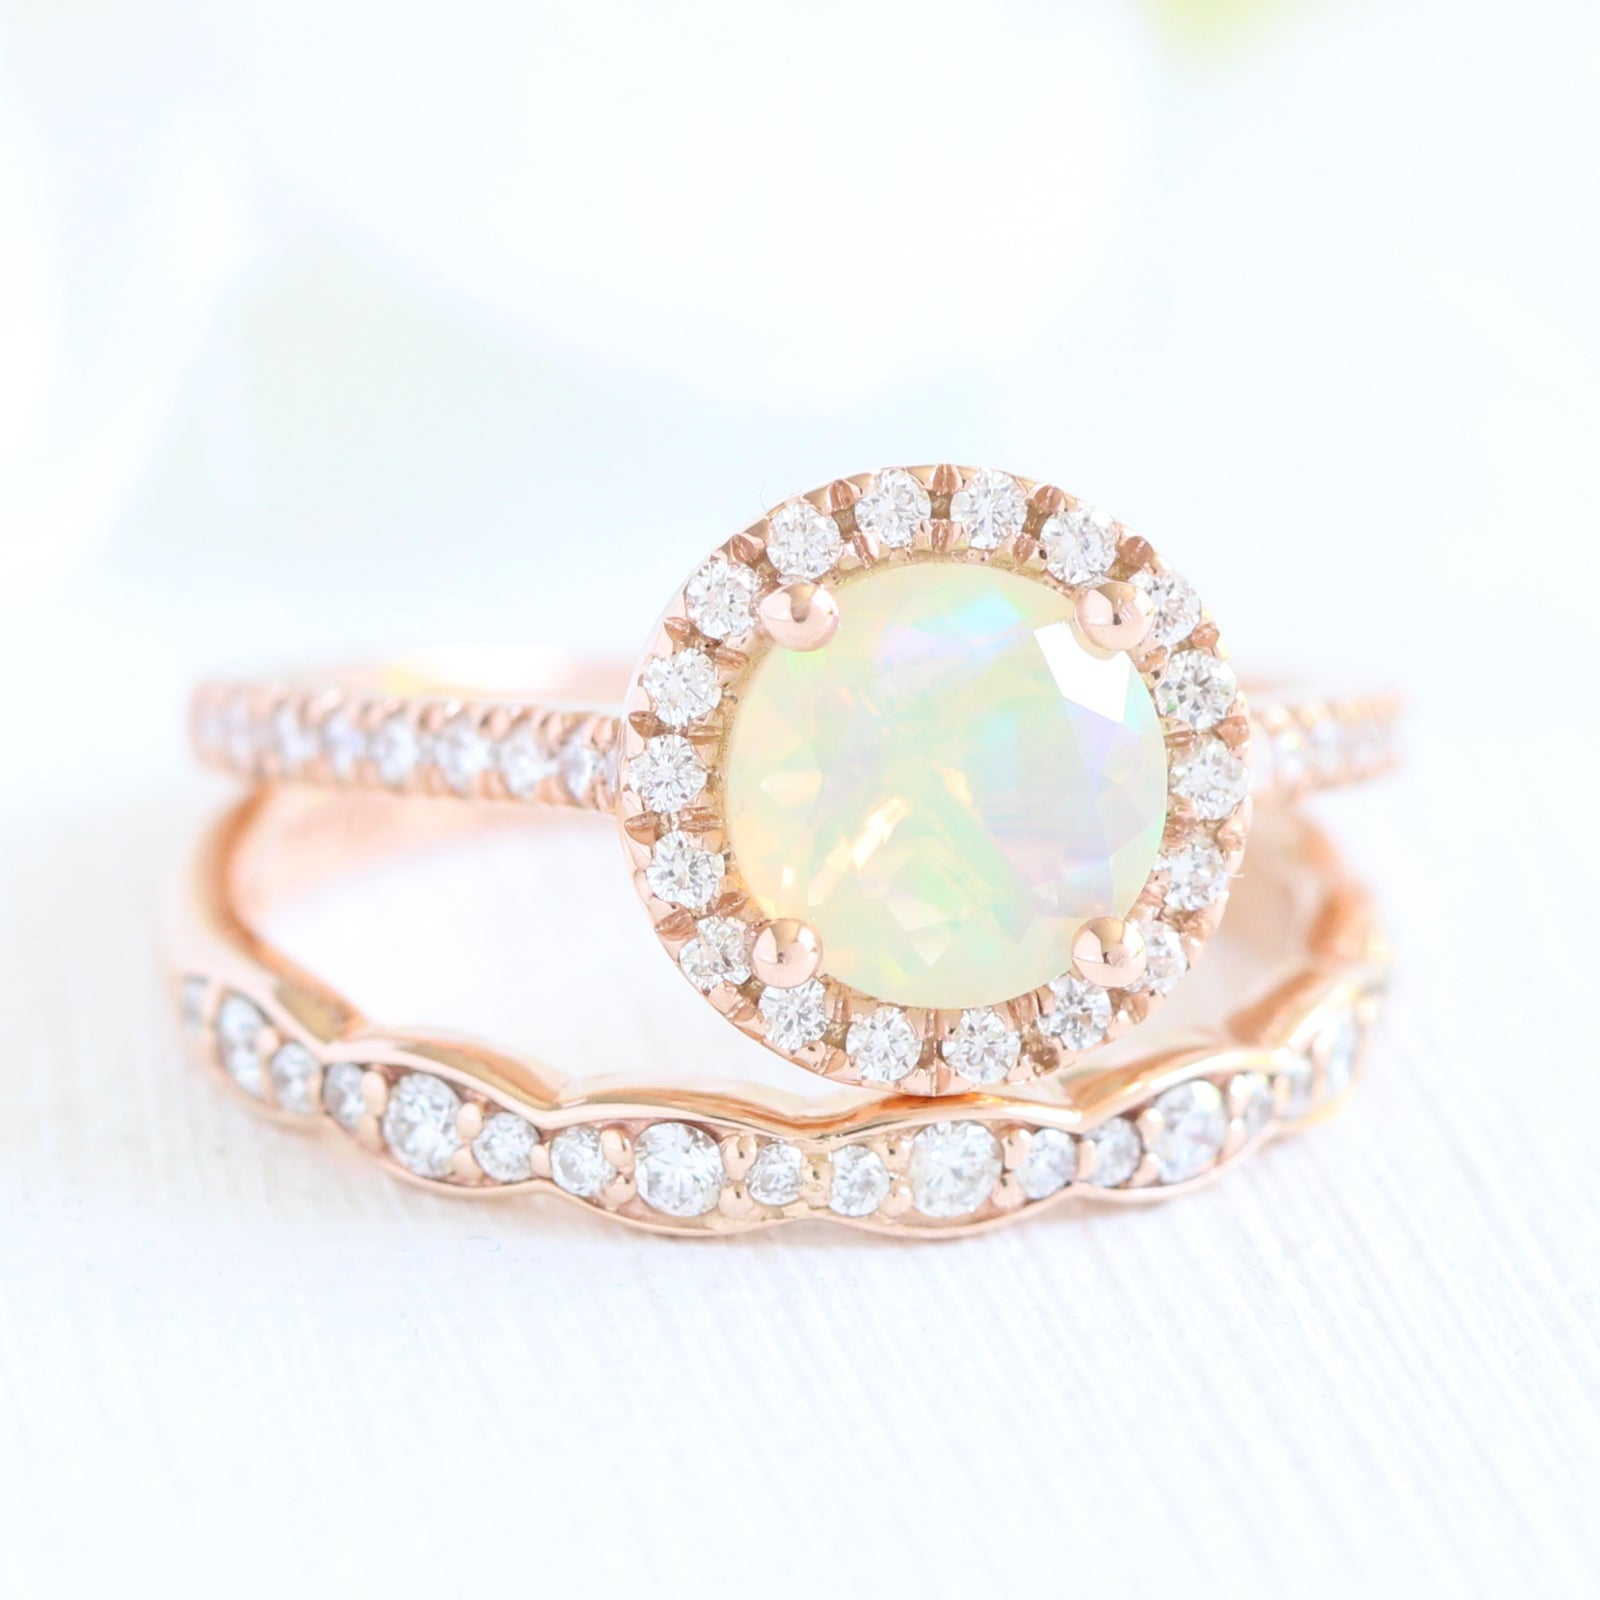 Luna Halo Pave Bridal Set W Round Opal And Scalloped Diamond Band La More Design: Rose Gold Scalloped Diamond Wedding Band At Websimilar.org